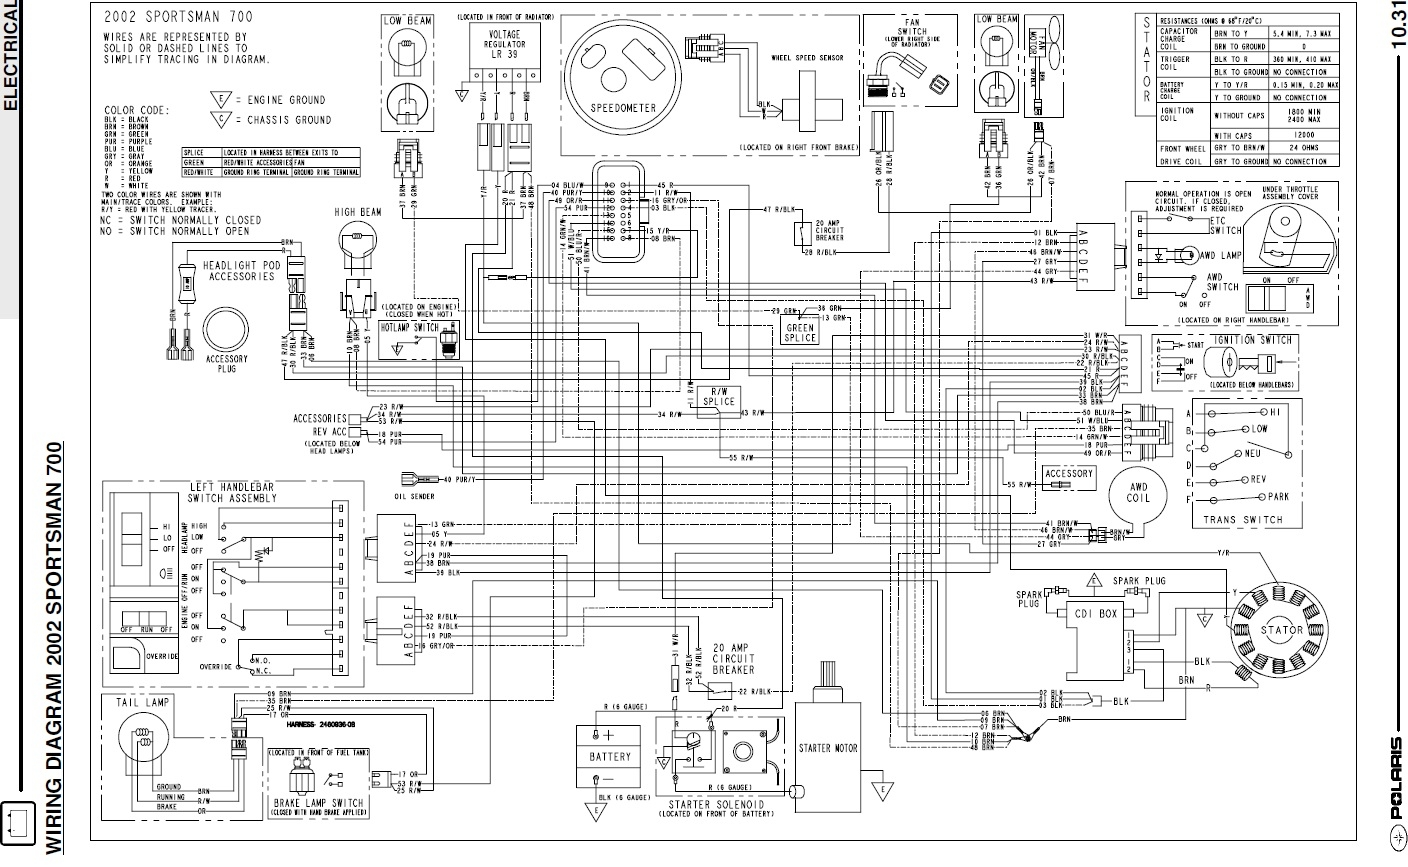 2004 polaris ranger 500 wiring diagram Download-2002 Polaris Sportsman 700 Parts Diagram Best Excellent Polaris Ranger 700 Wiring Diagram S Electrical 4-d